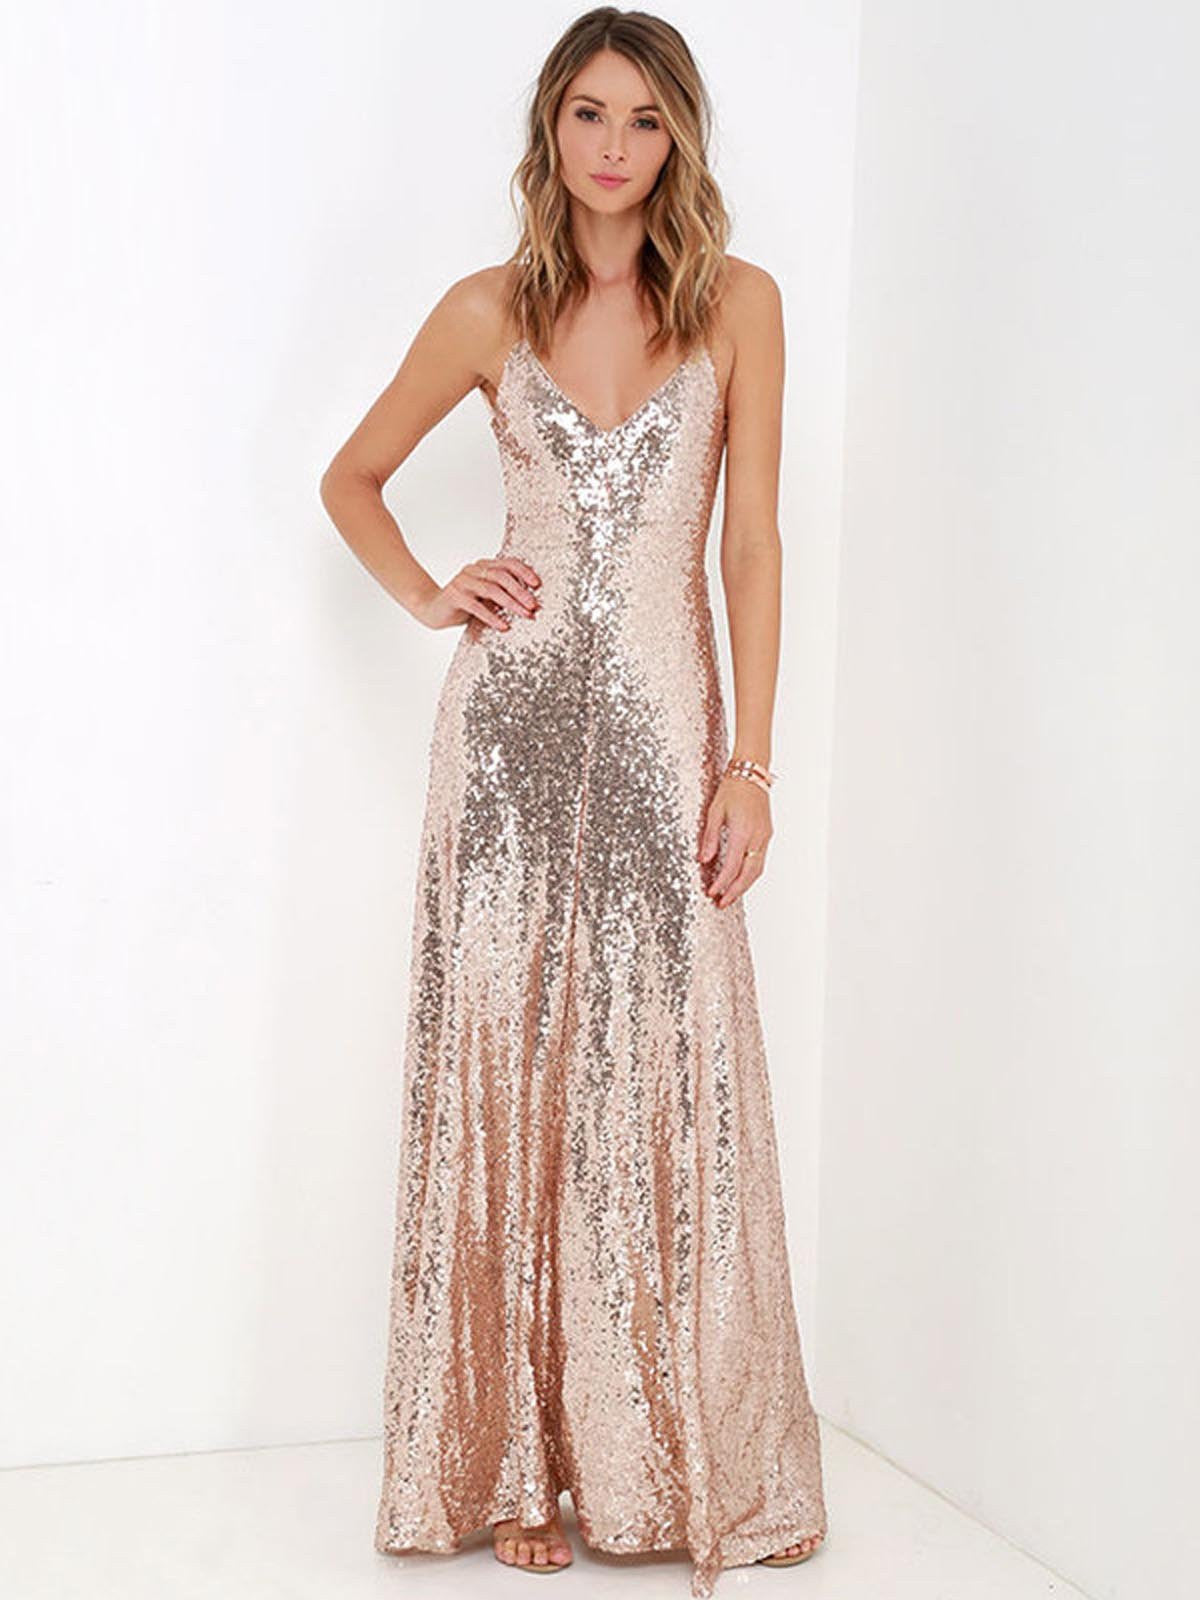 8321fb003 Pink 1920s Backless Sequin Dress - Retro Stage - Chic Vintage ...